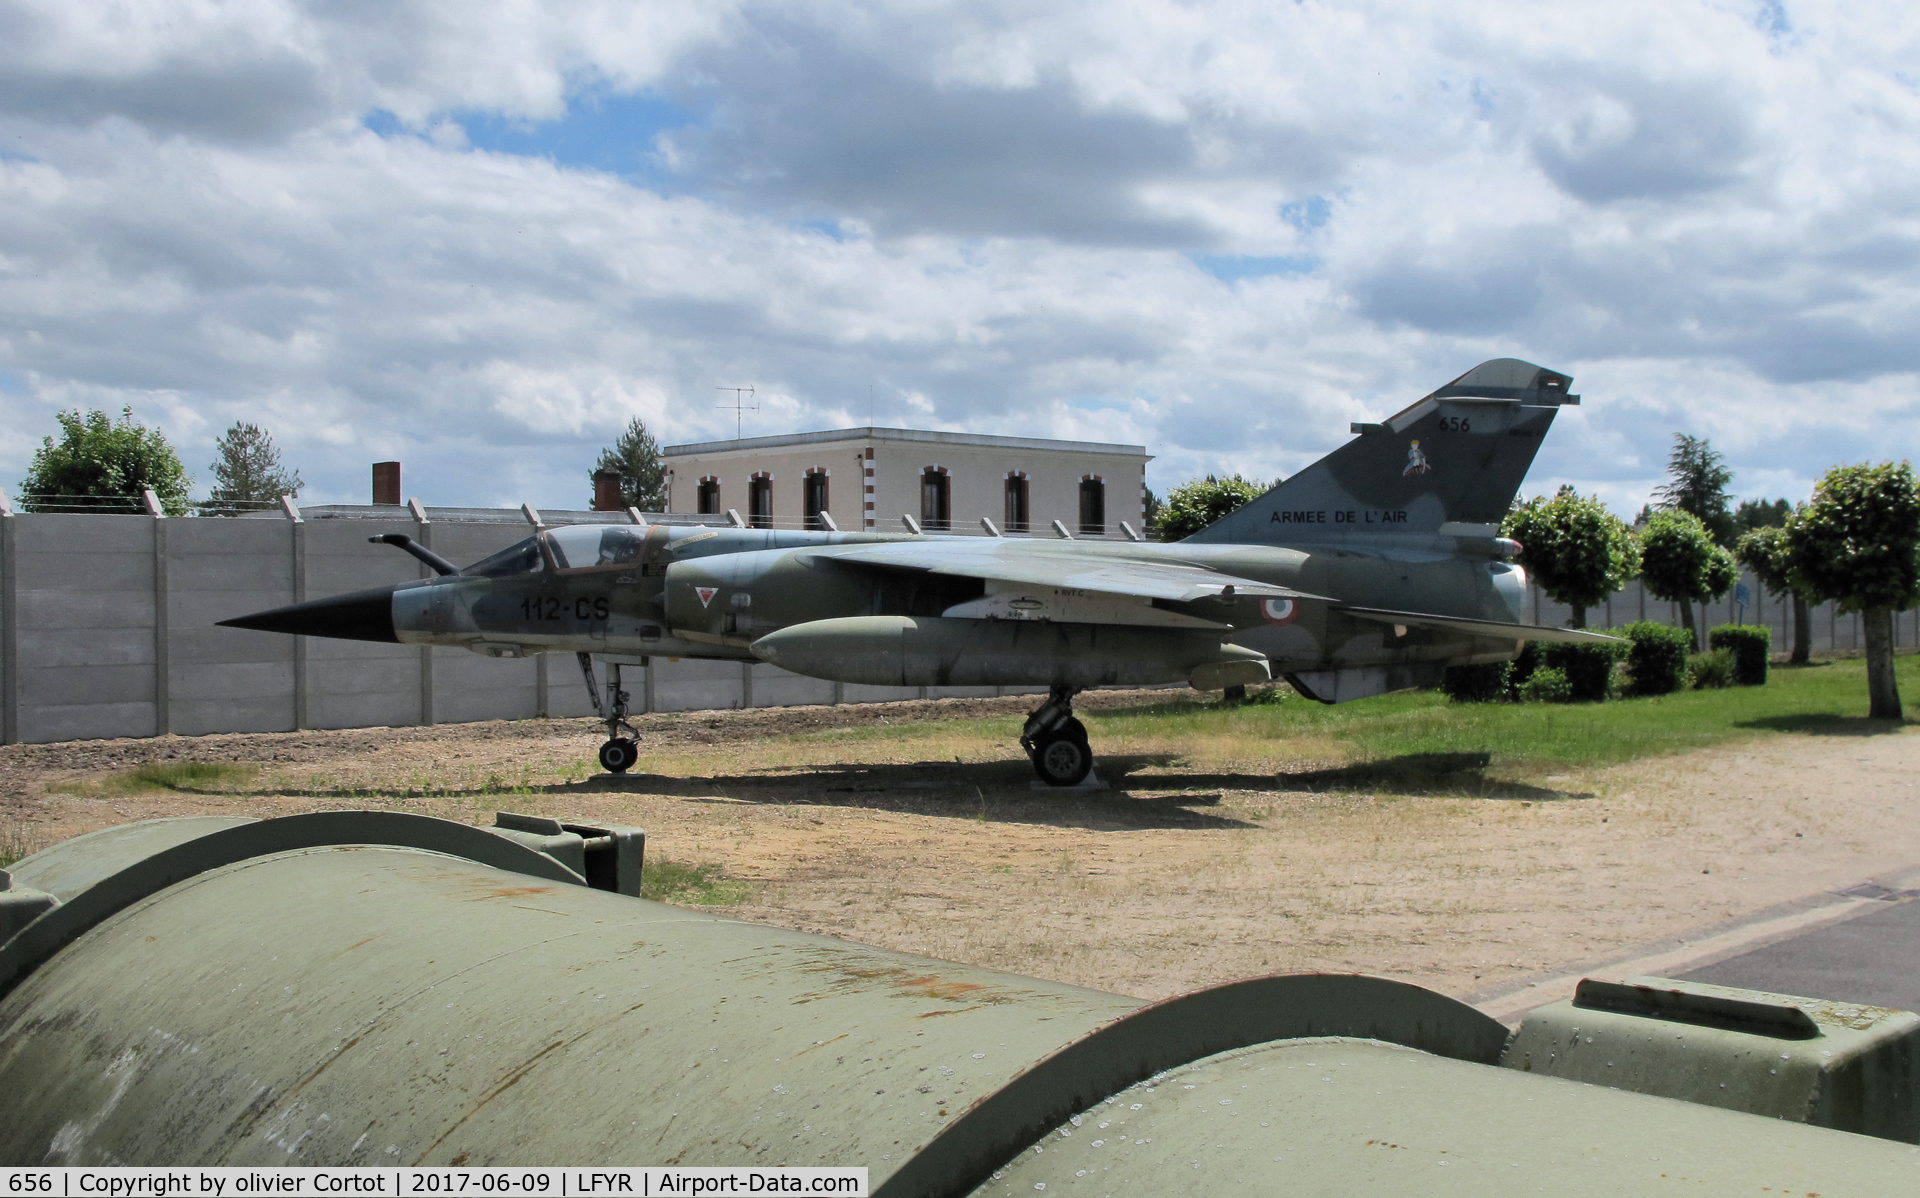 656, Dassault Mirage F.1CR C/N 656, Almost hidden behind walls... why ?